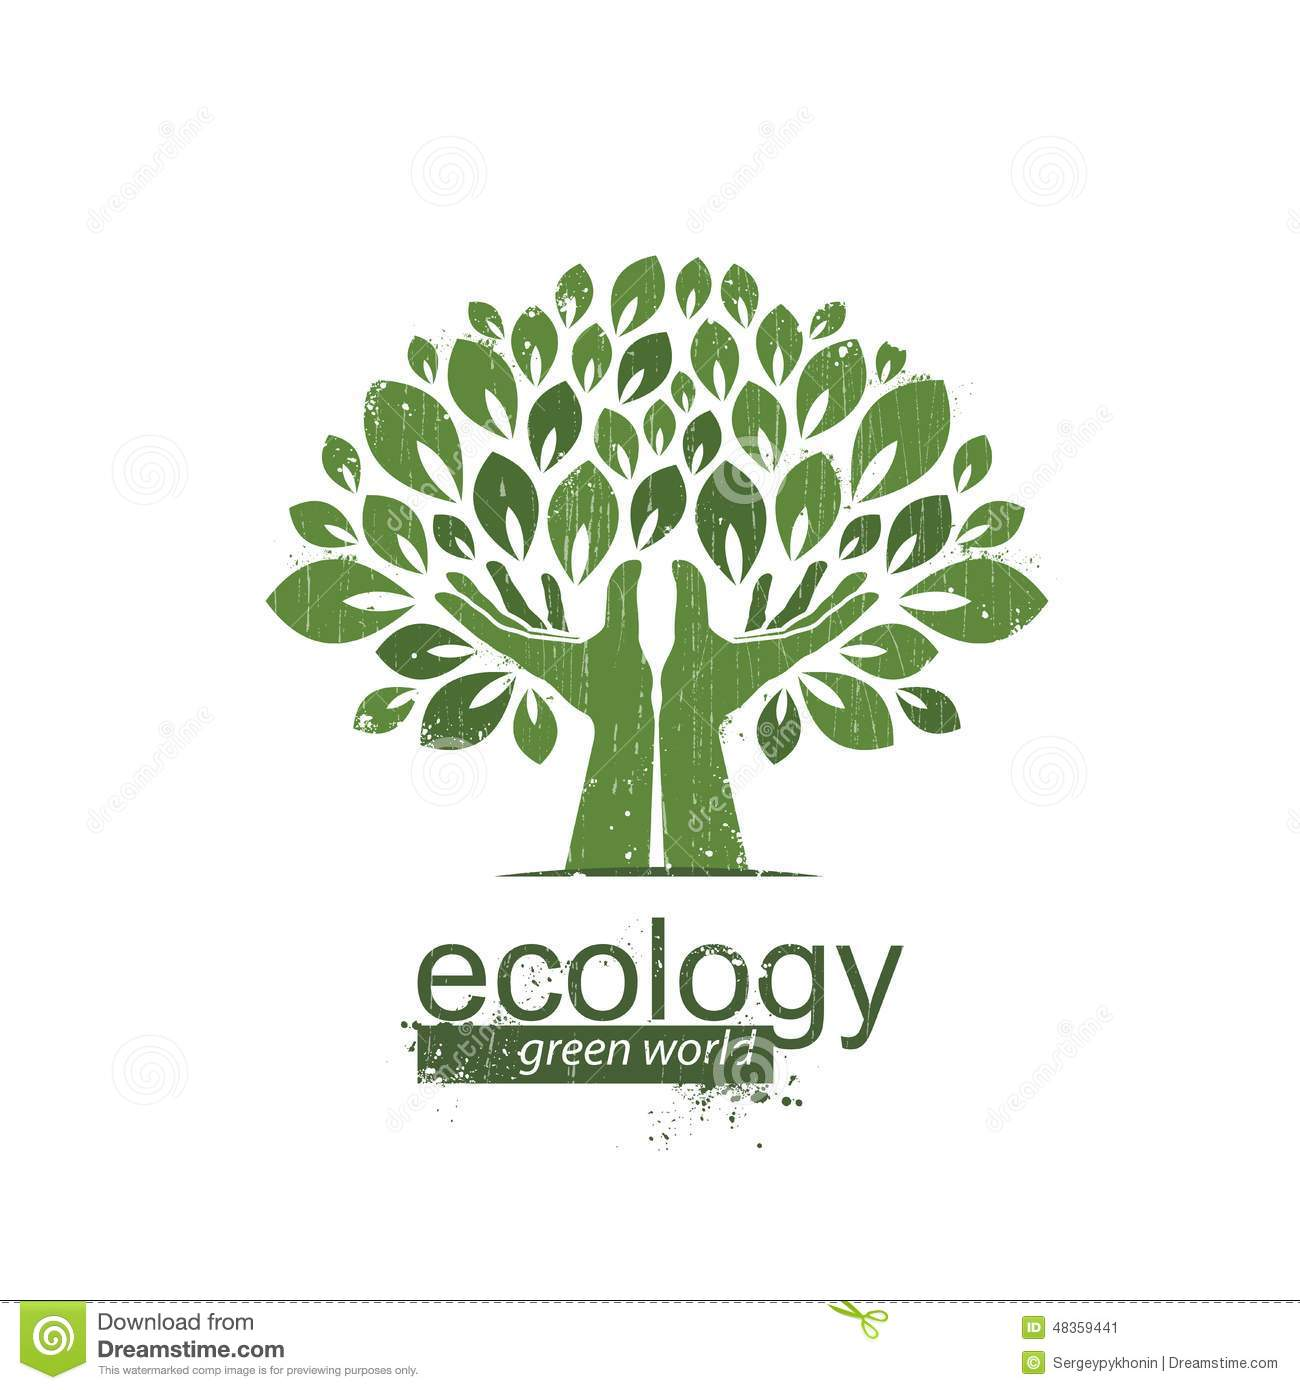 Go Green With Eco Tree And Planet Imagego Green Go Clean Sunflower